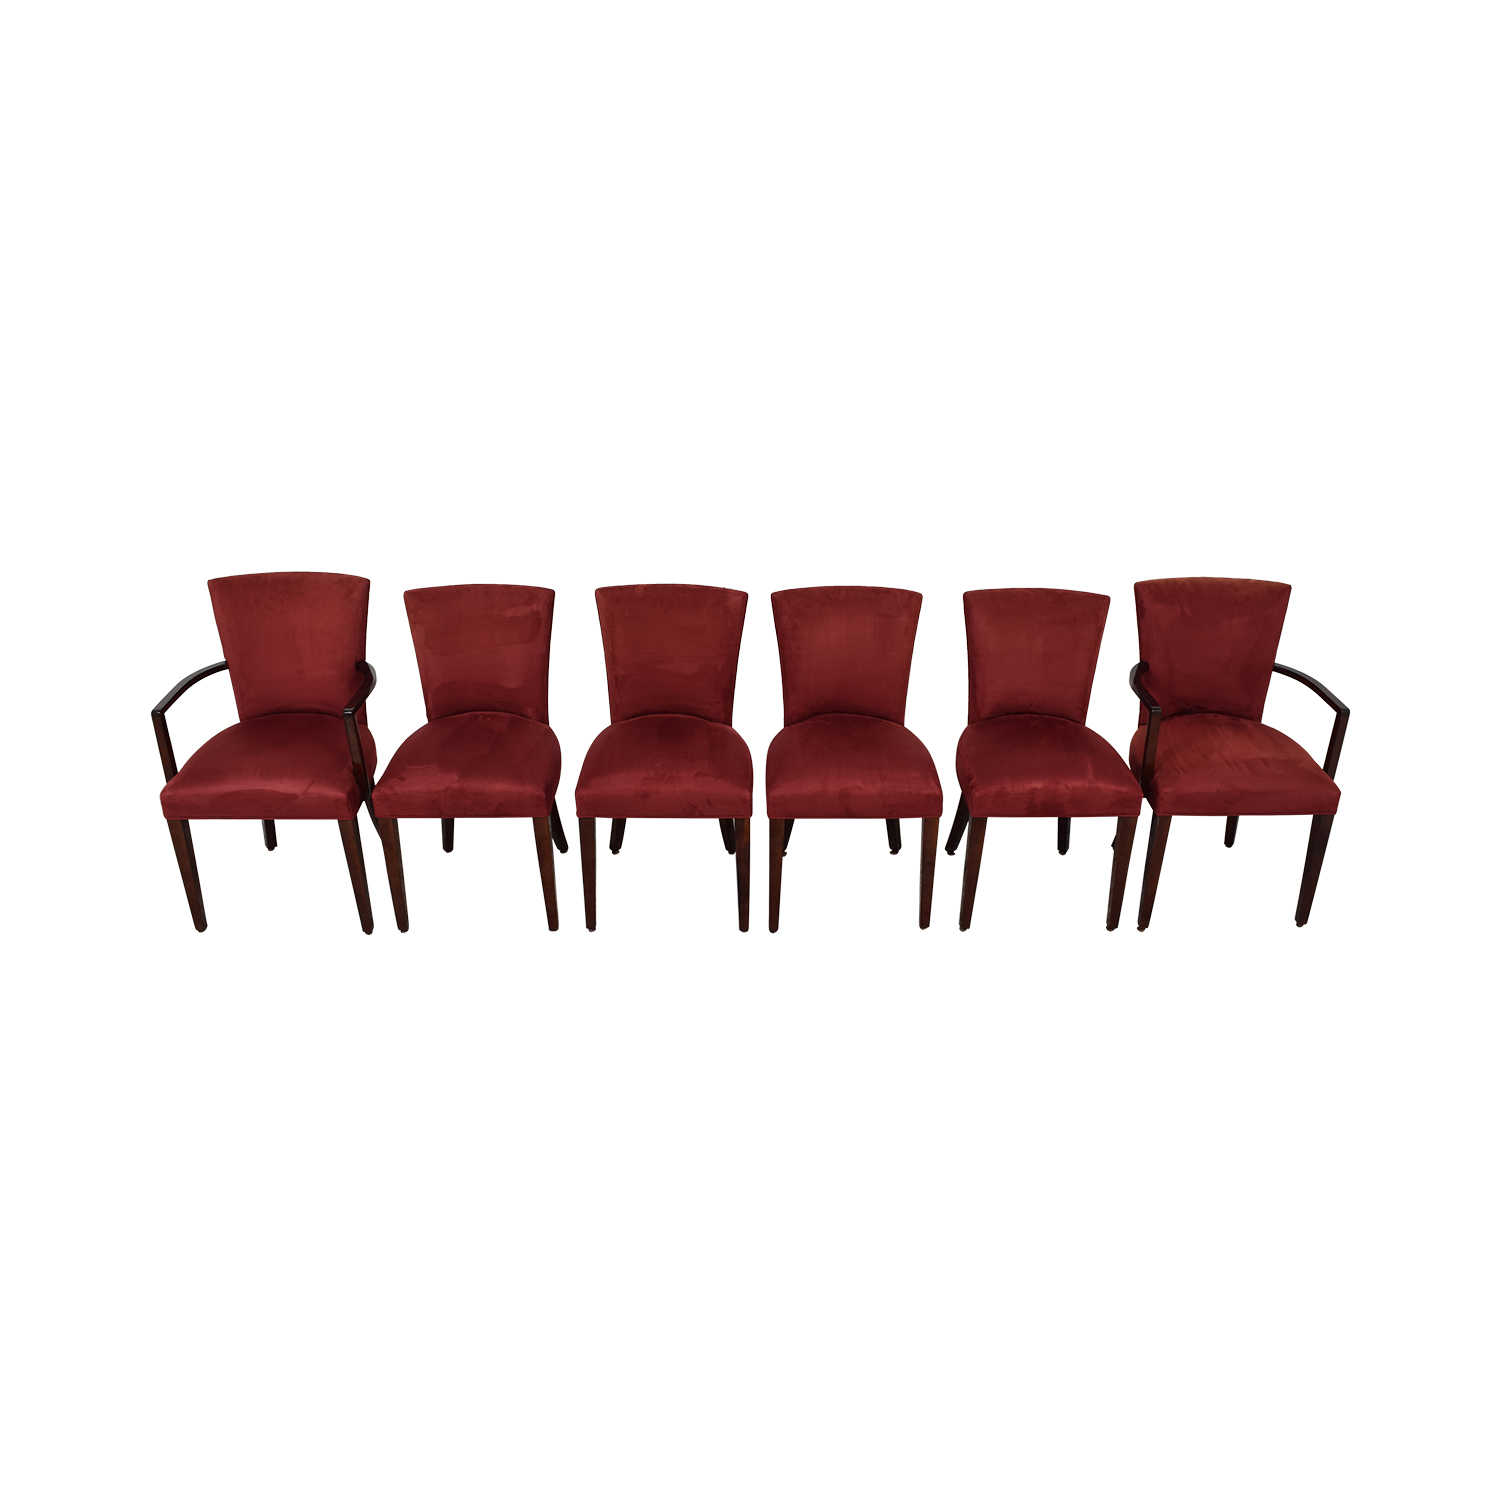 Dining Chair Set / Chairs